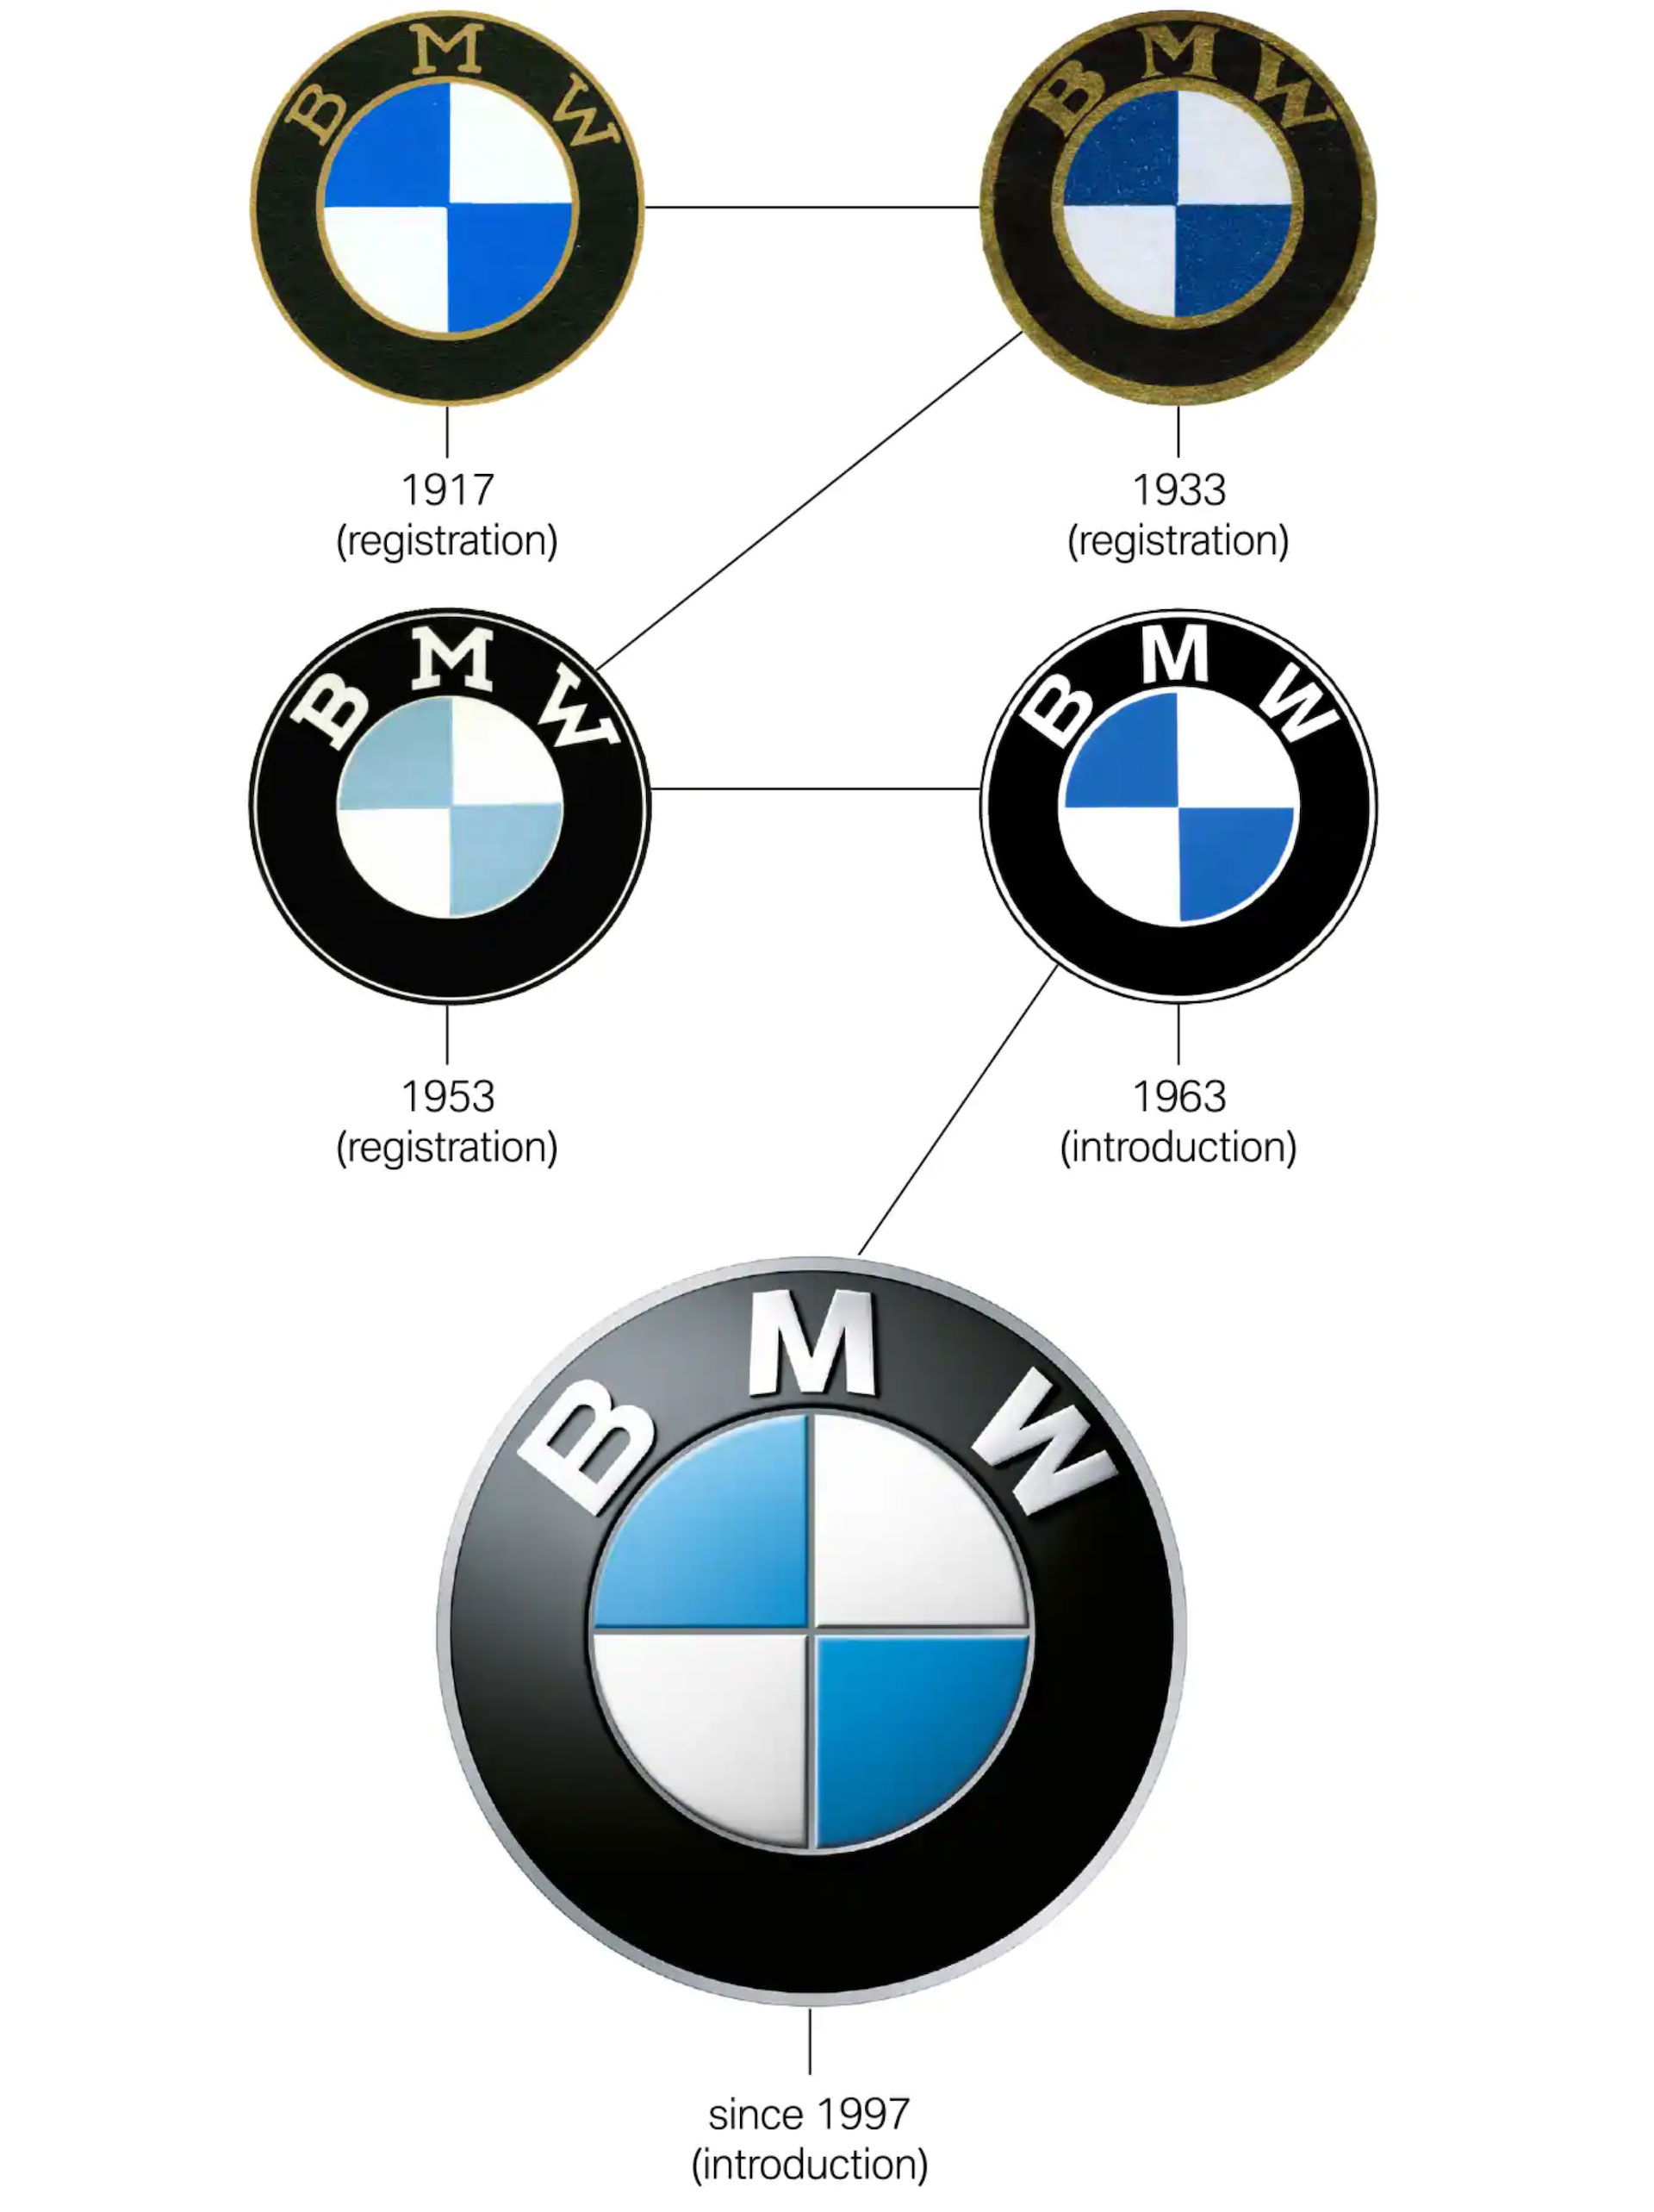 The Definitive Story Behind the BMW Logo » Portal4News